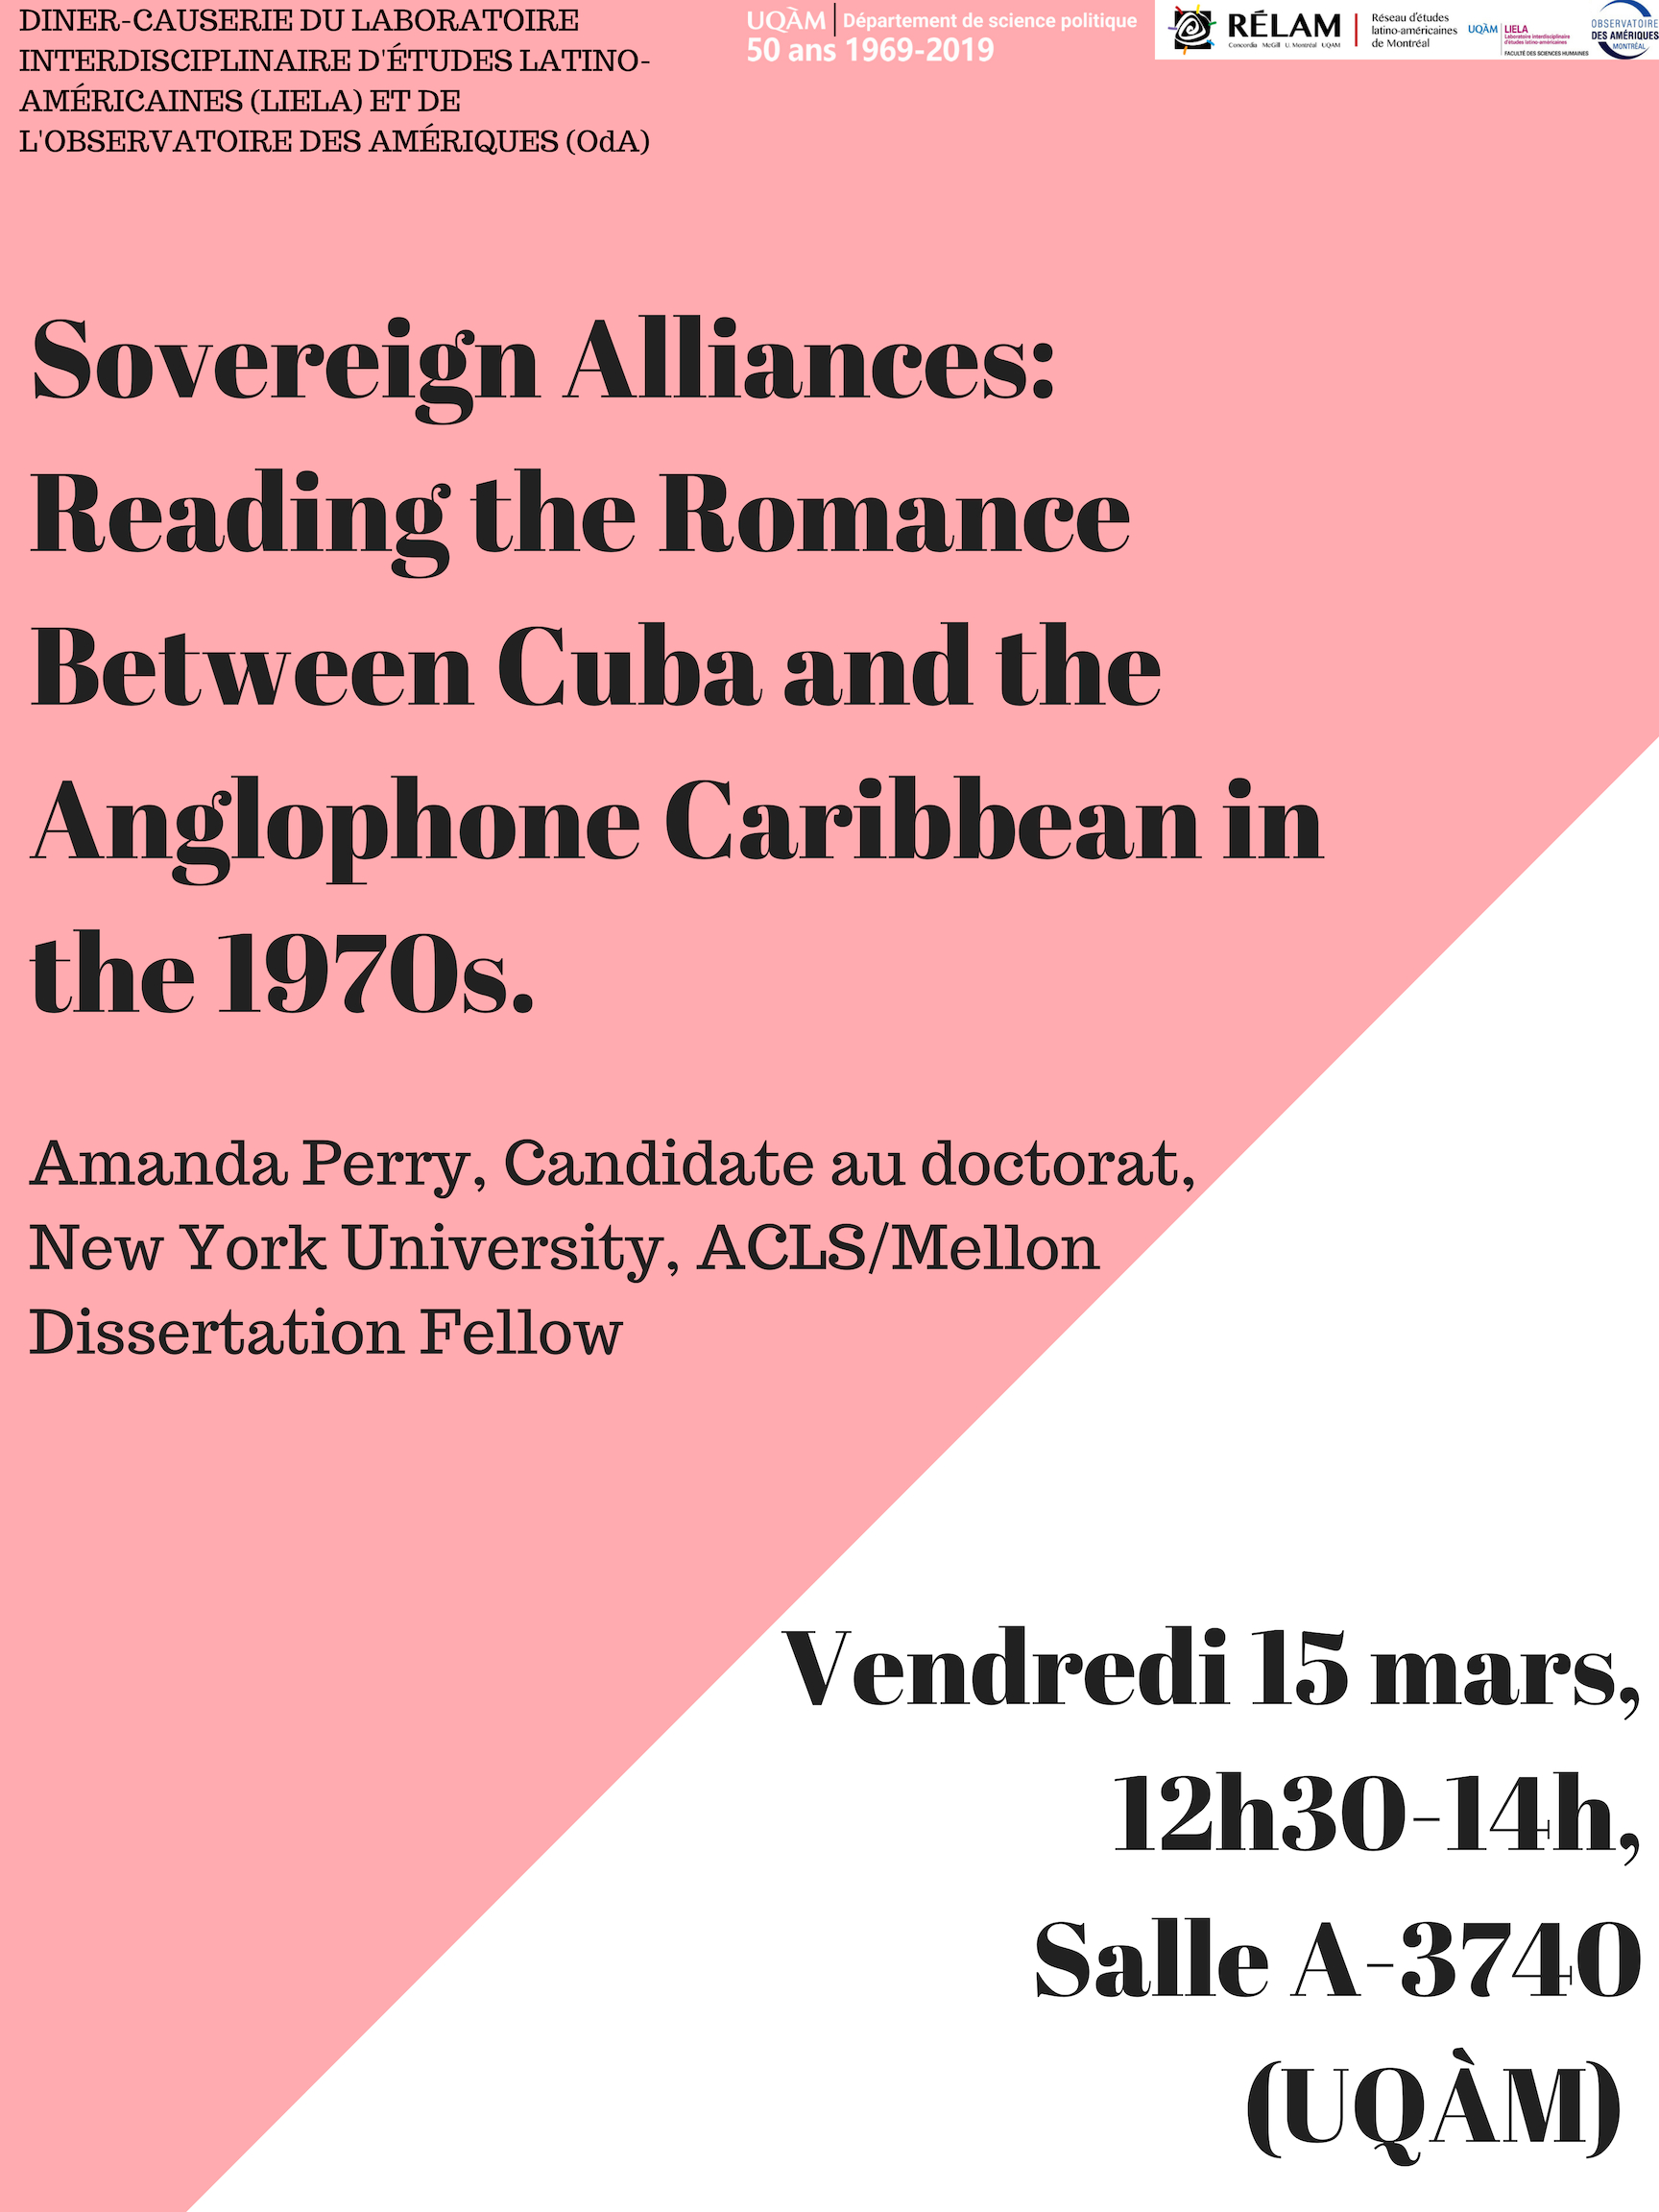 Sovereign alliances: reading the romance between Cuba and the anglophone Caribbean in the 1970s